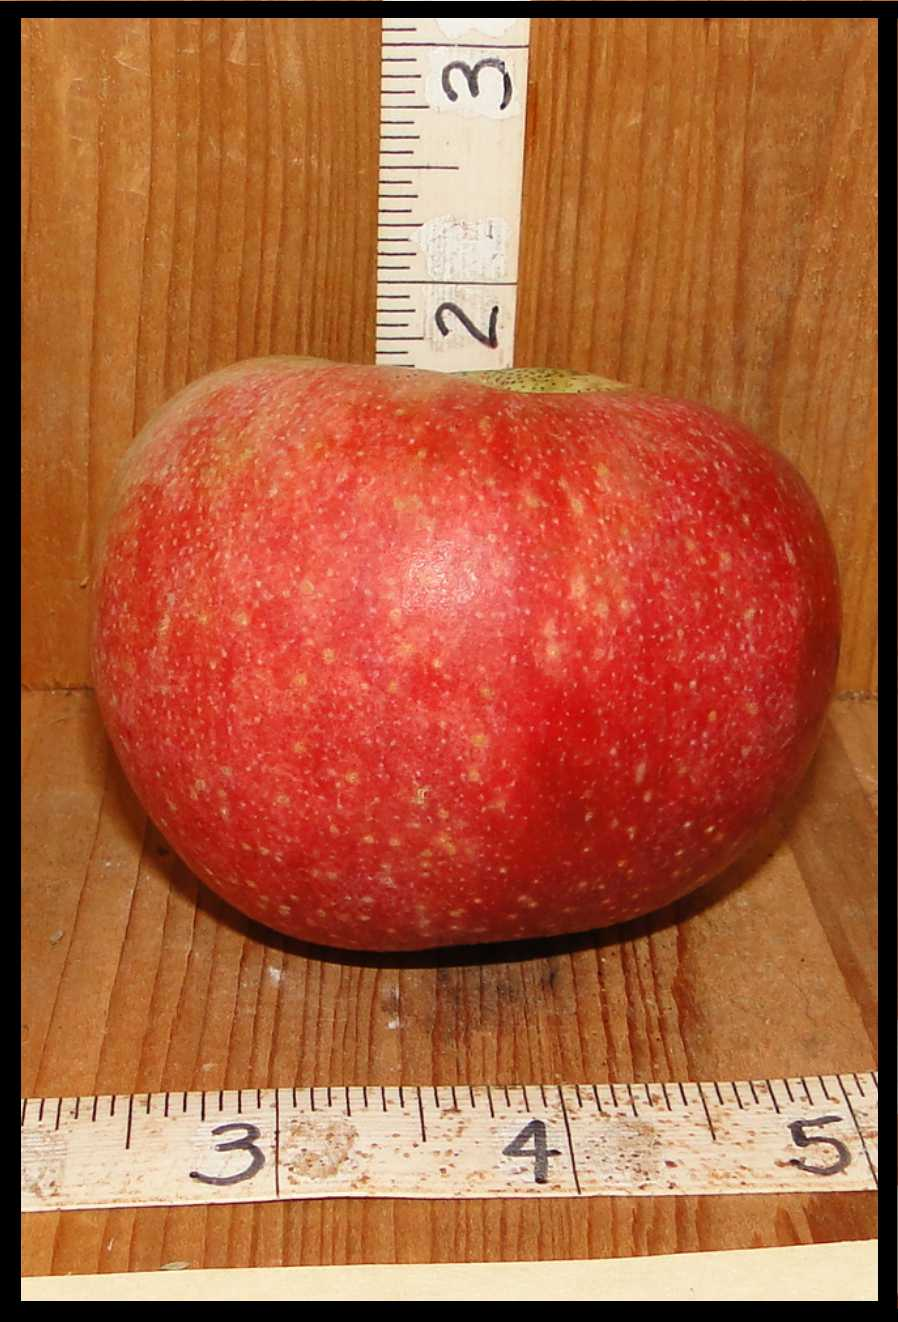 red apple with numerous very small white dots